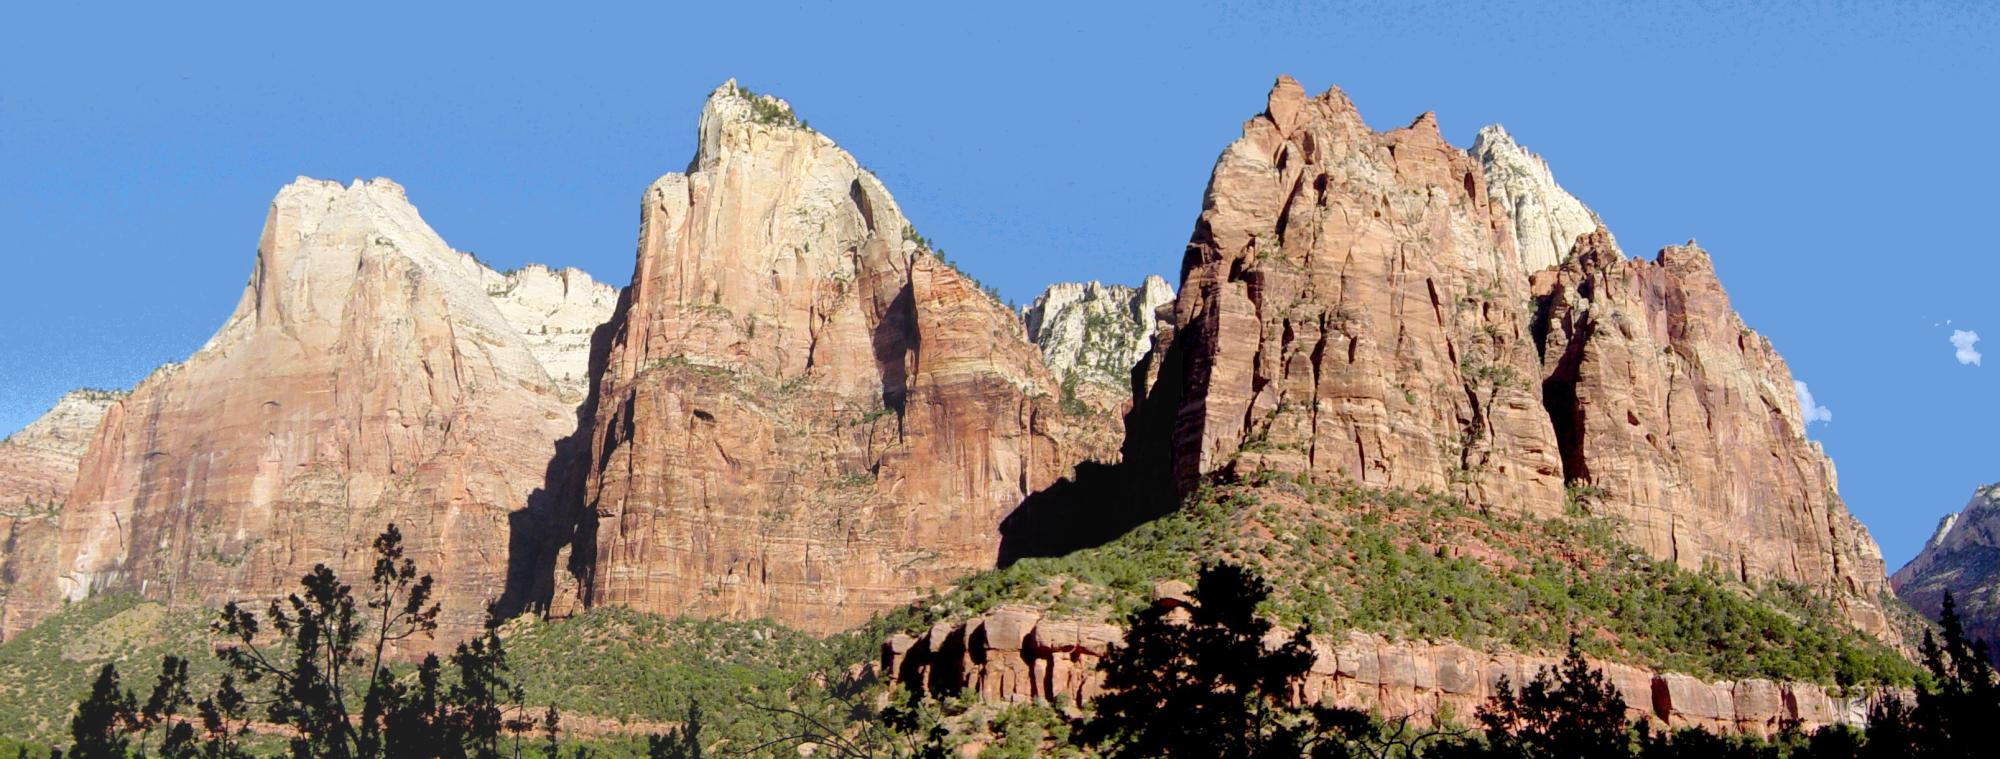 The Three Patriarchs in Zion Canyon.jpg